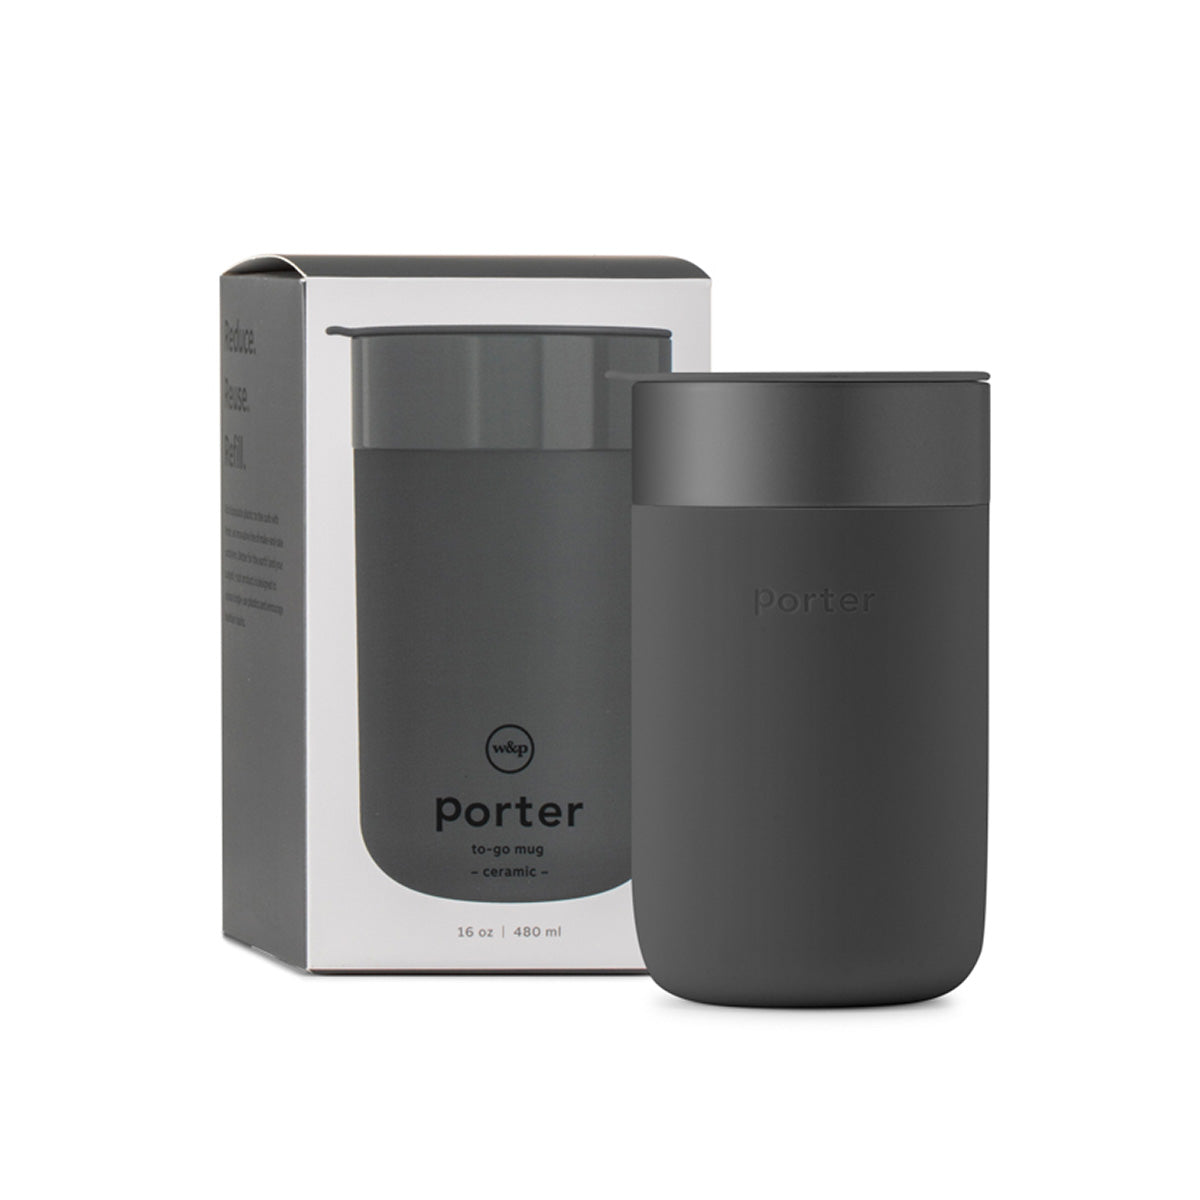 Reusable Cup Mug Porter Charcoal 480ml Mca Store Museum Of Contemporary Art